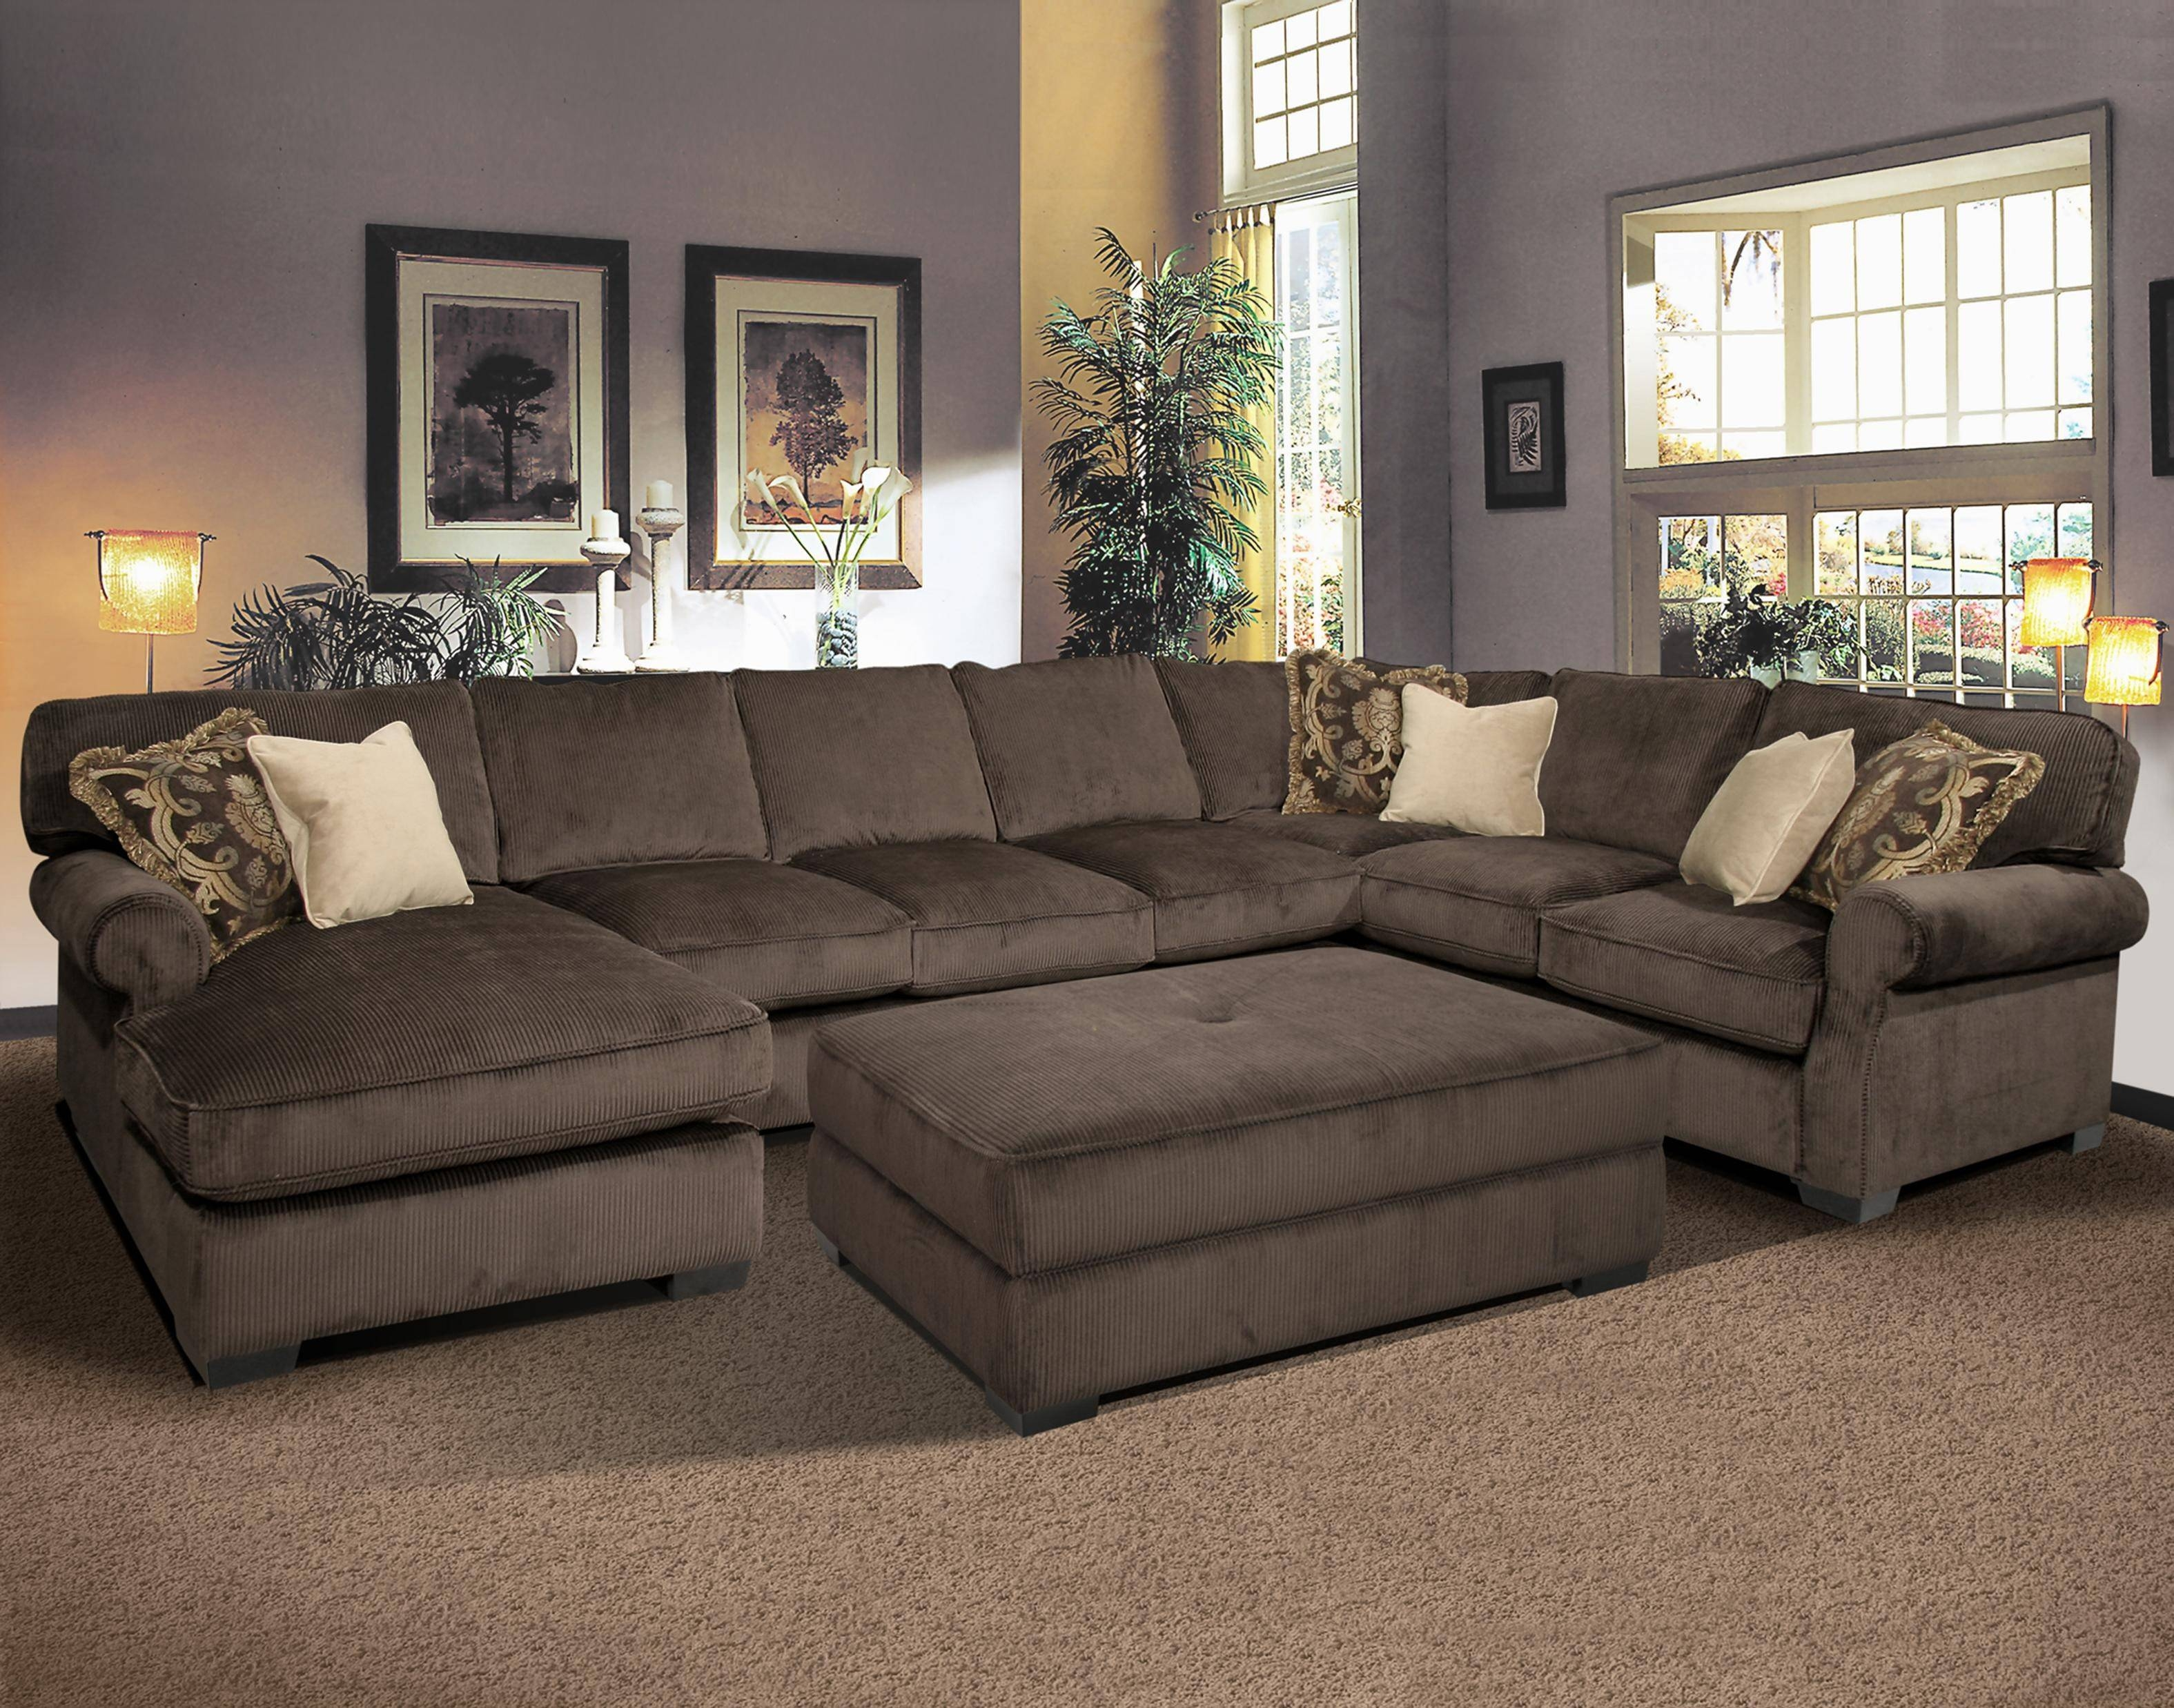 Sectional Sofas For Sale In Houston Tx | Tehranmix Decoration inside Houston Sectional Sofa (Image 11 of 25)